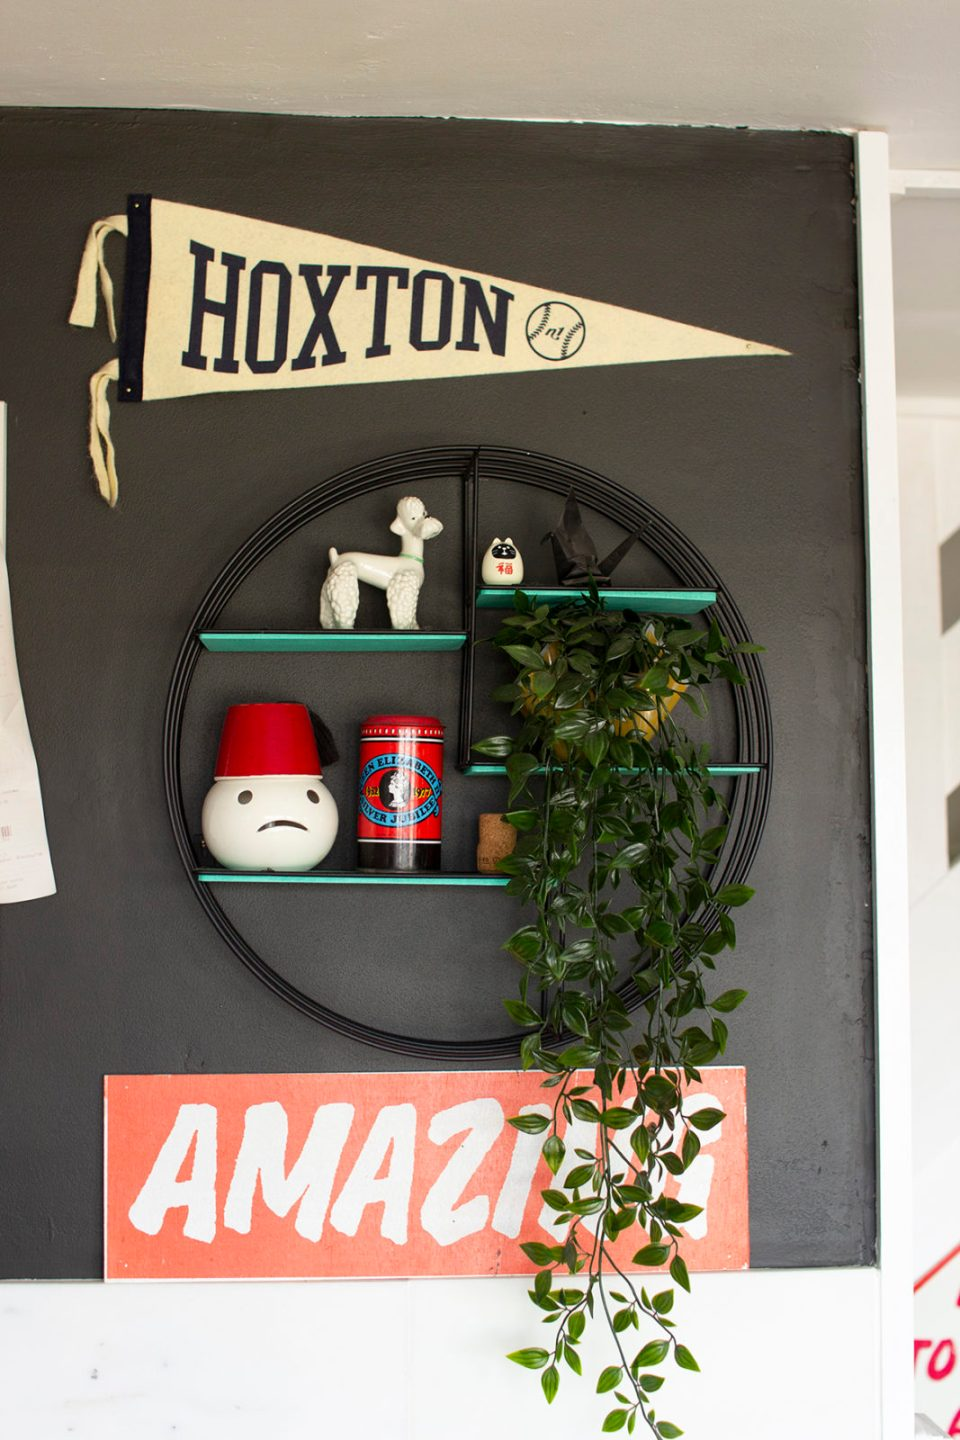 kitchen artwork with hoxton flag and amazing sign